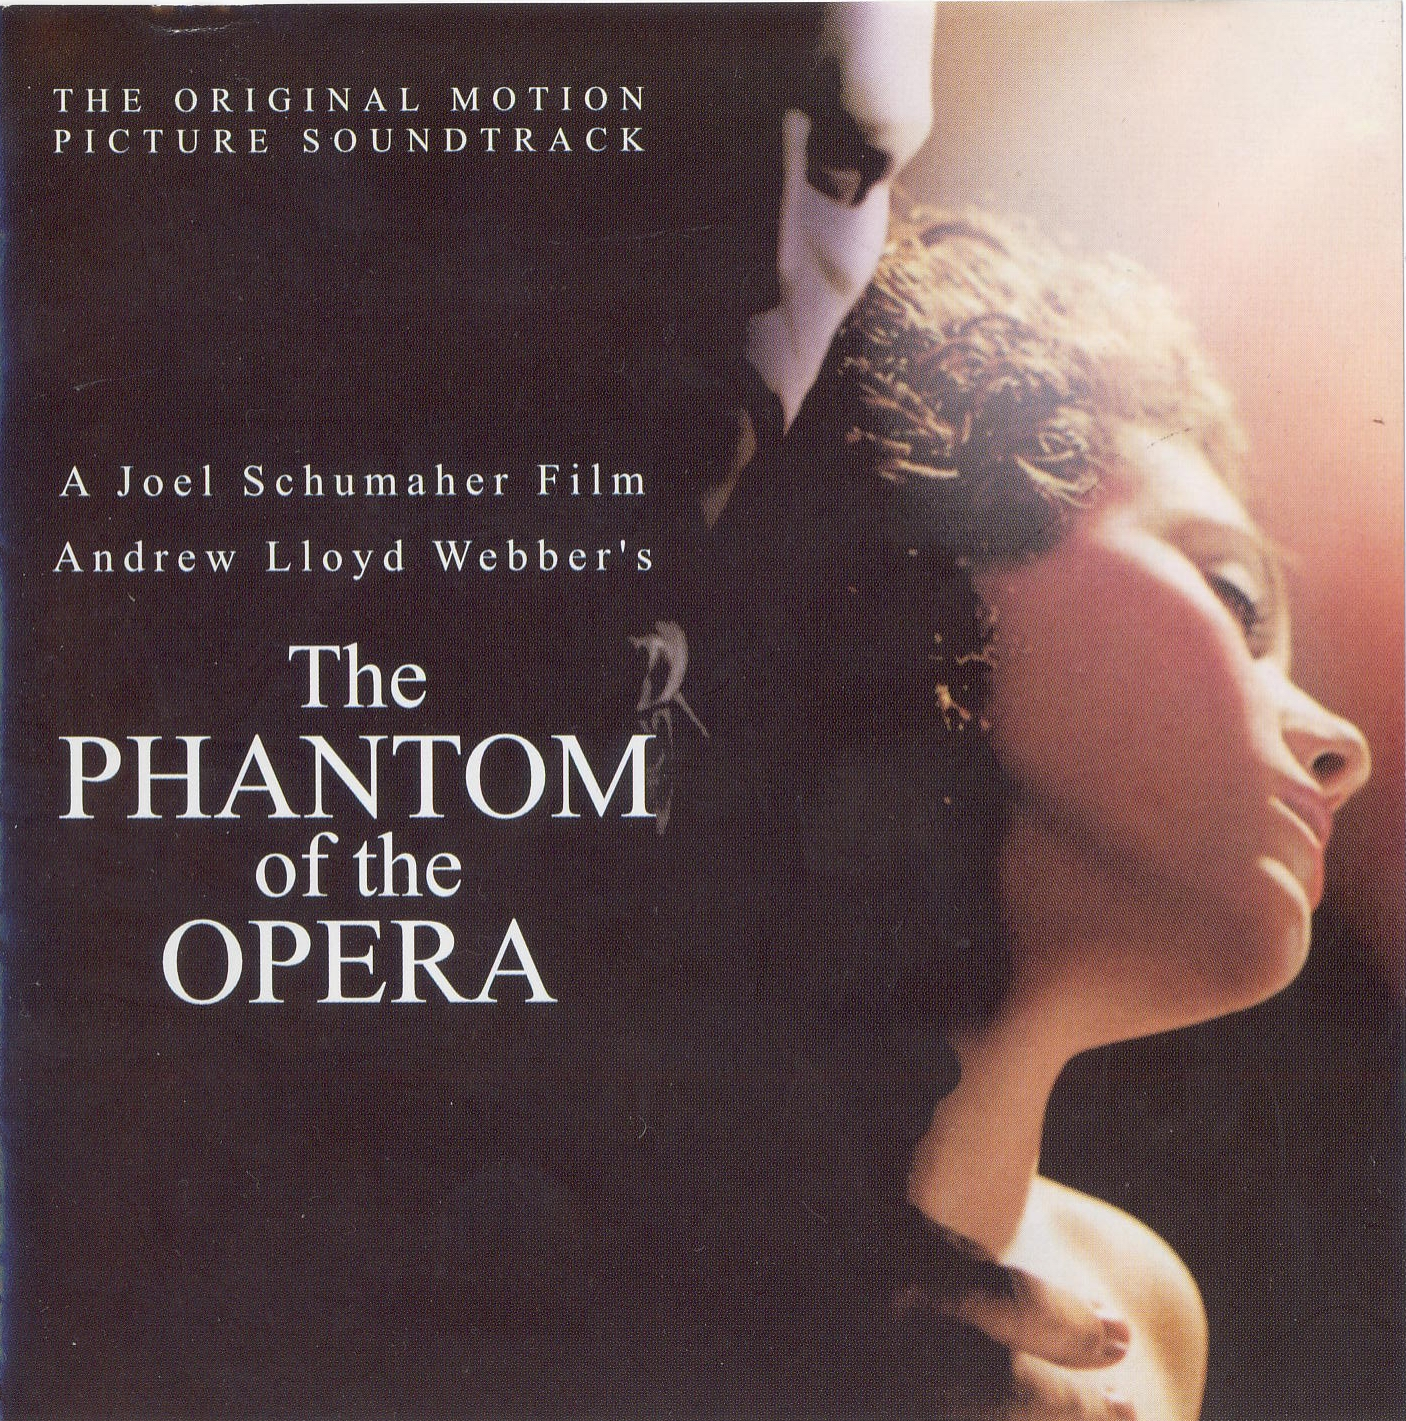 an analysis of the theme of masks in phantom of the opera a play by andrew lloyd webber Mycroft does an analysis of the theme of masks in phantom of the opera a play by andrew lloyd webber remark to sherlock an analysis of the character of dartagnan in.